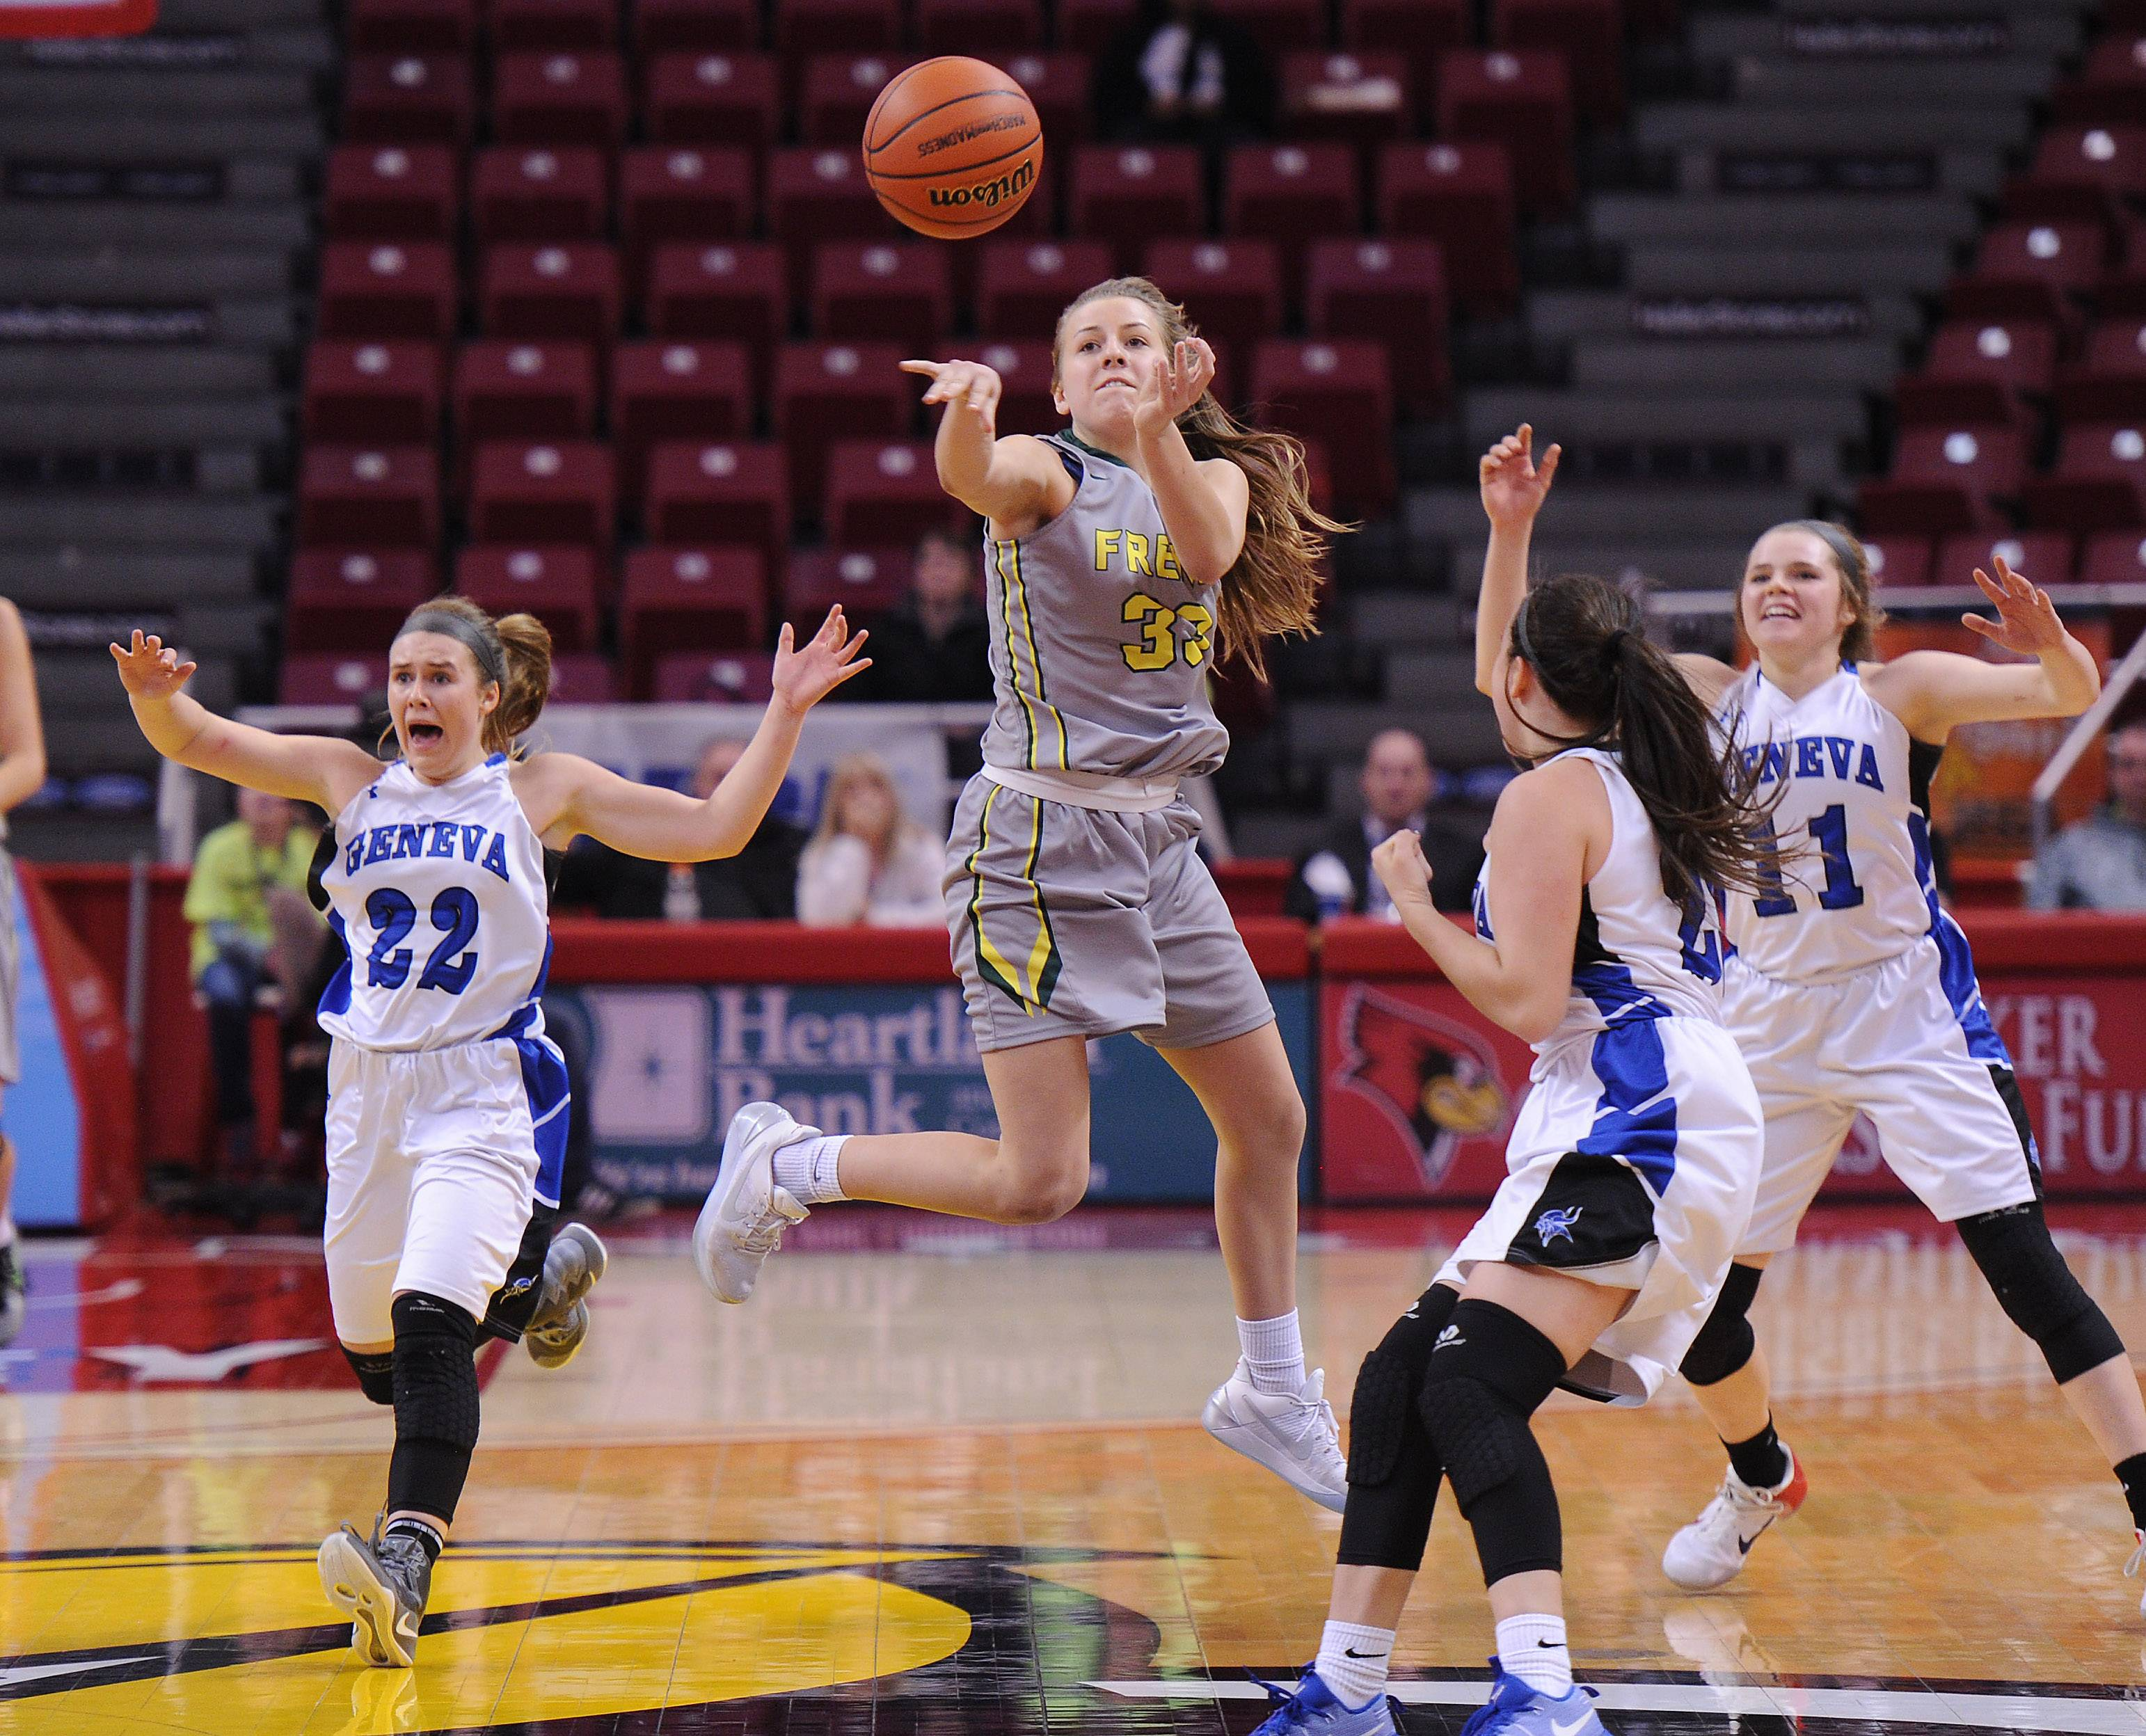 Fremd's Emily Klaczek throws up one more shot at the buzzer but it's no good as Geneva's Briana Borkowicz starts the celebration in the Class 4A girls basketball state semifinals in Normal on Friday.